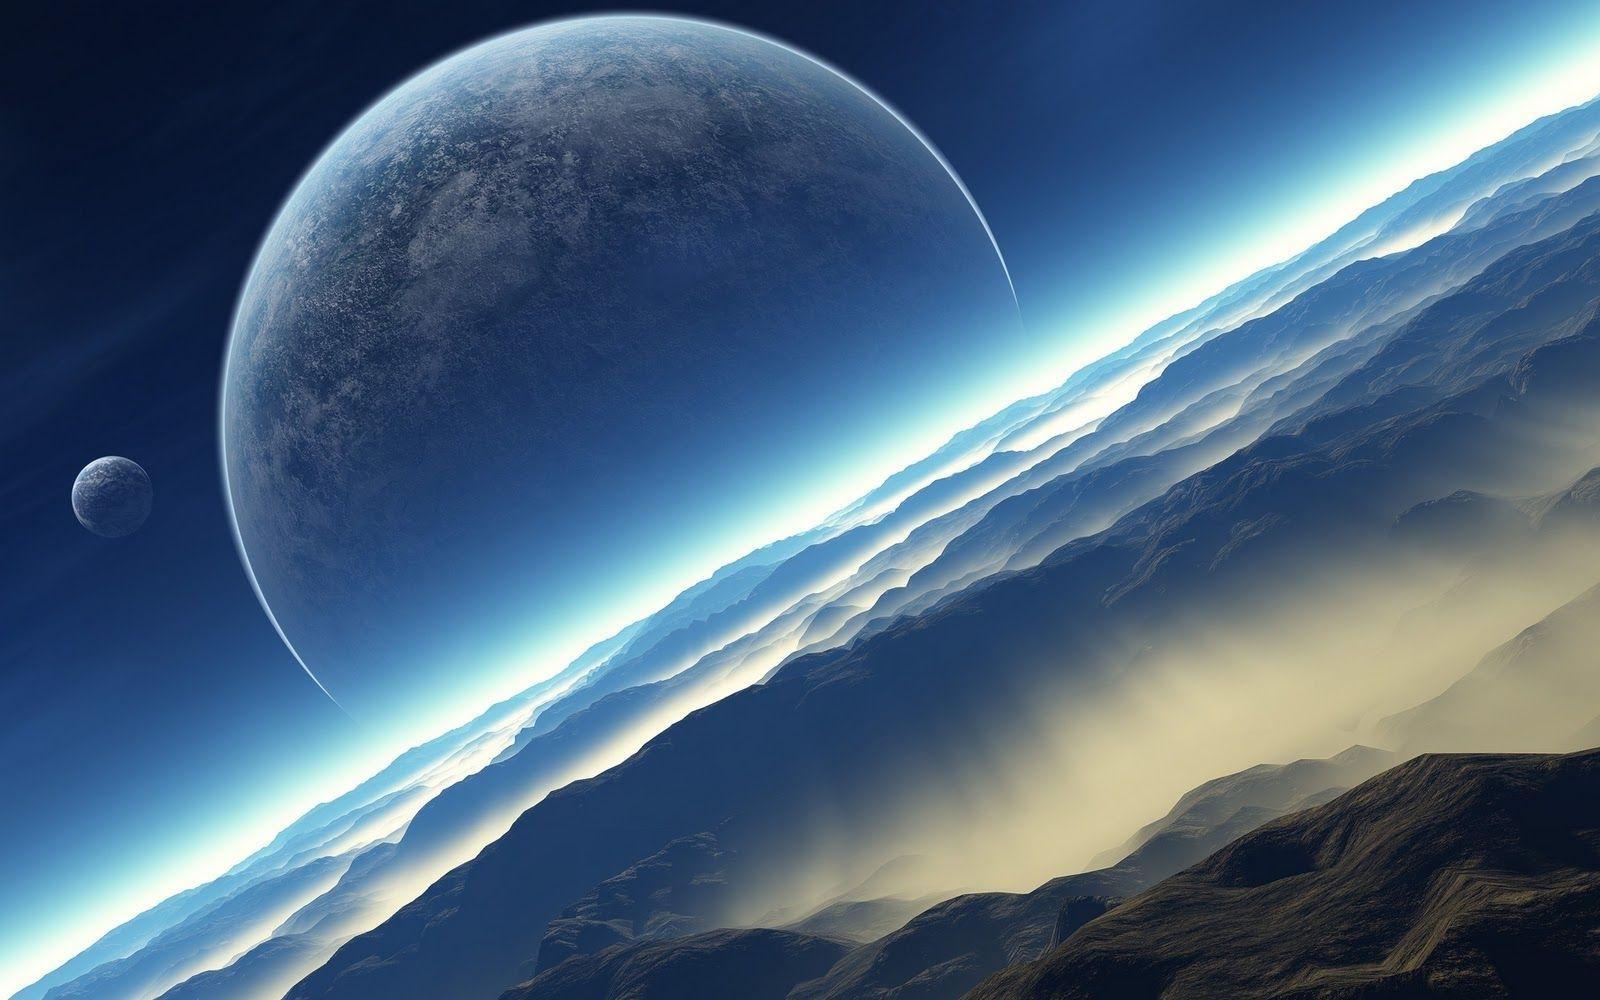 Wallpapers For > Space And Planets Wallpapers Hd